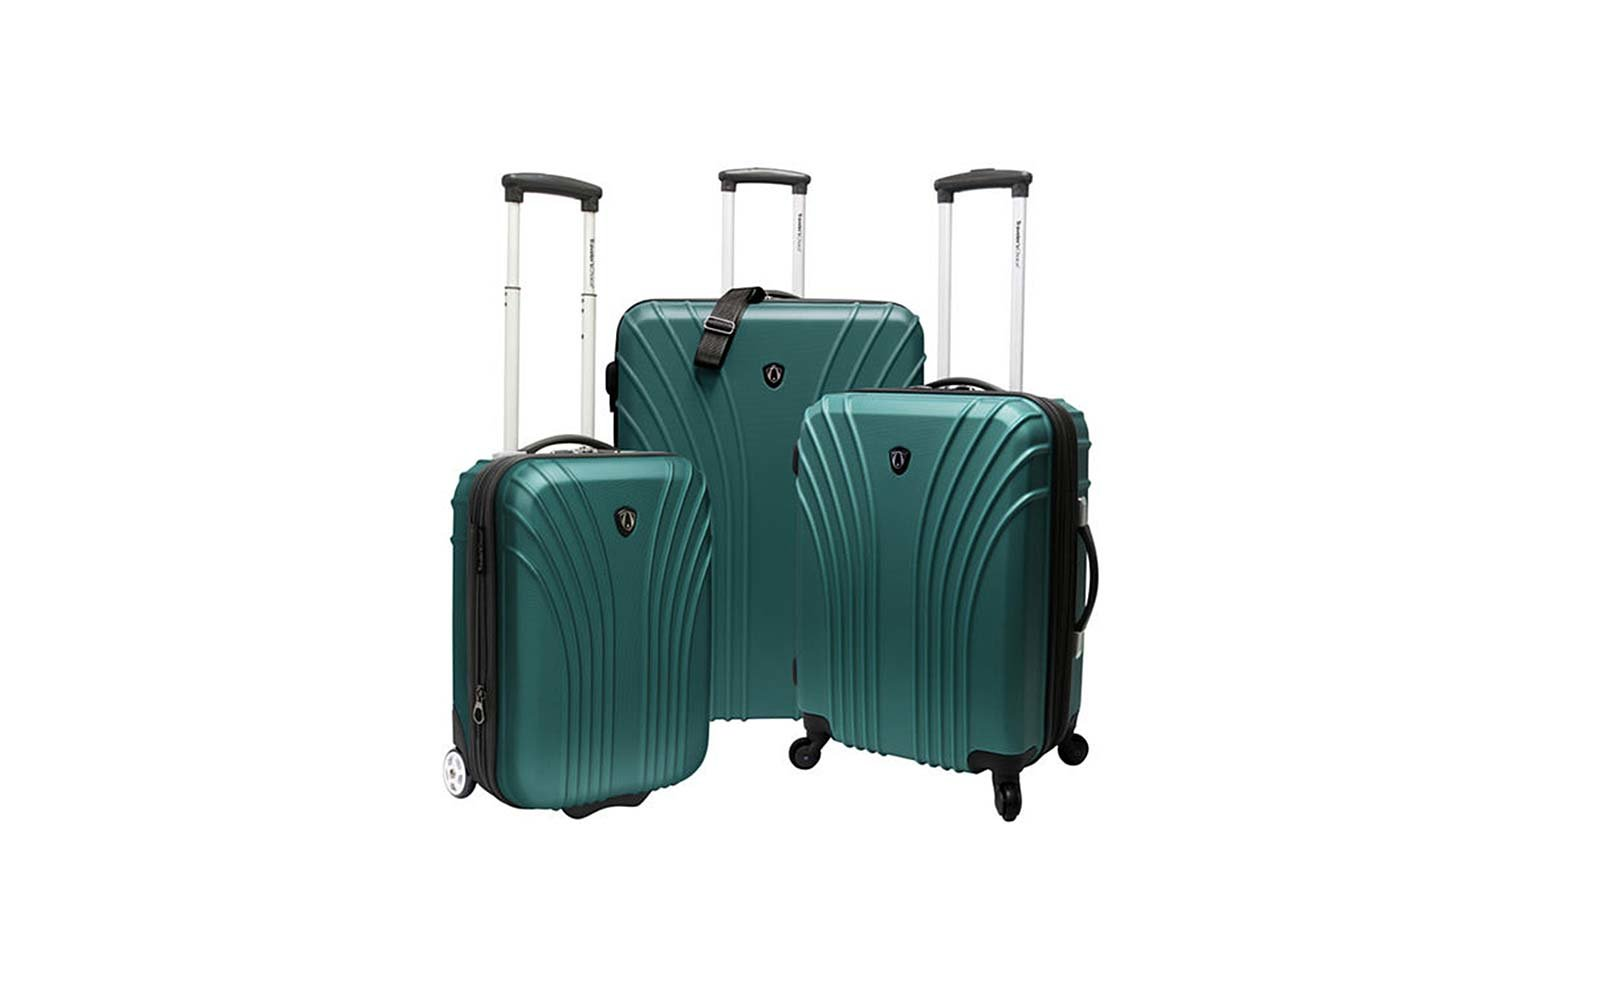 Brookstone Hardsided Ultra Lightweight Luggage Set